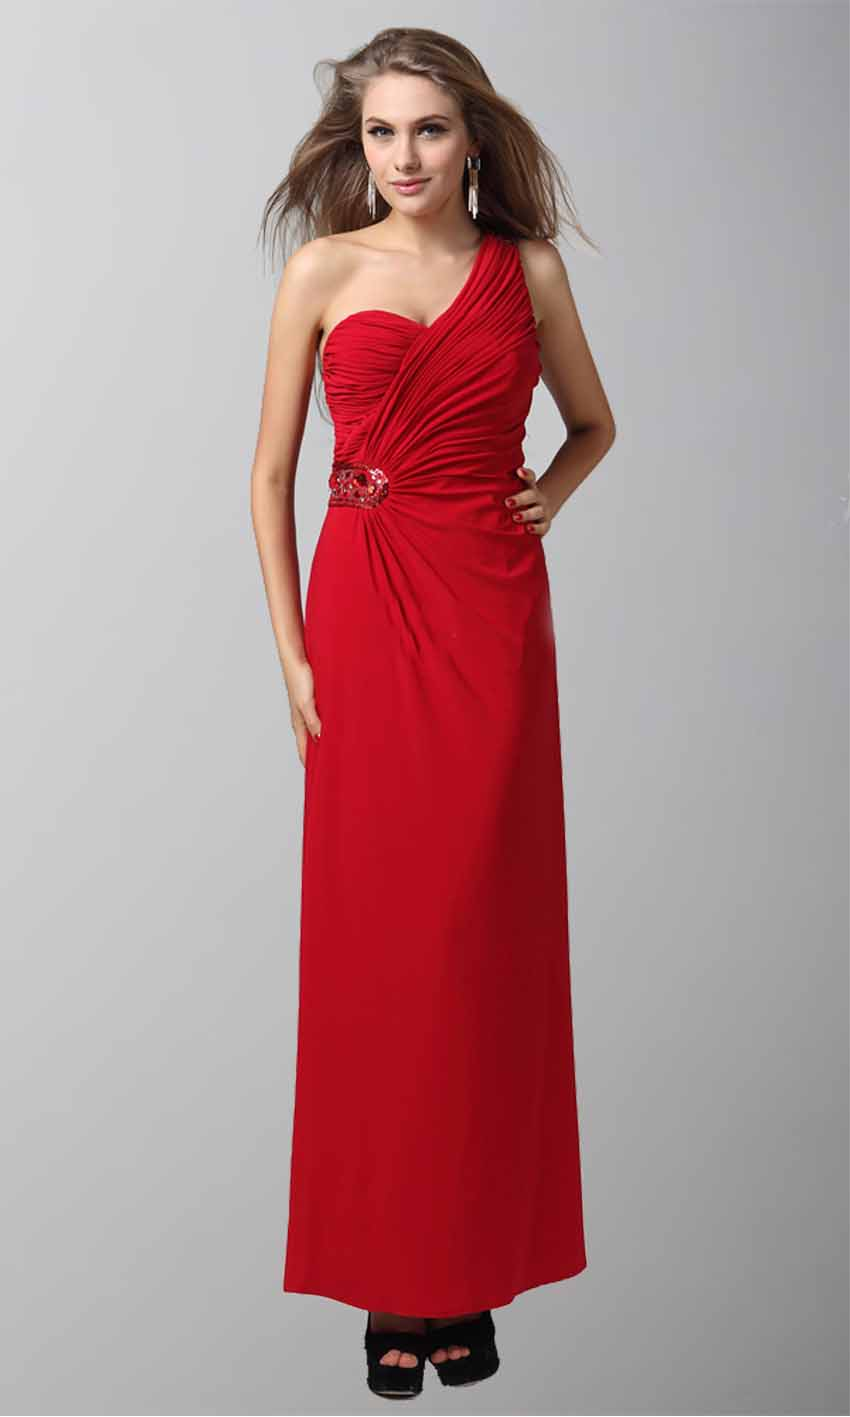 Brilliant Red One Shoulder Plicated Sequined Prom Dress KSP046 [KSP046] - £98.00 : Cheap Prom Dresses Uk, Bridesmaid Dresses, 2014 Prom & Evening Dresses, Look for cheap elegant prom dresses 2014, cocktail gowns, or dresses for special occasions? kissprom.co.uk offers various bridesmaid dresses, evening dress, free shipping to UK etc.